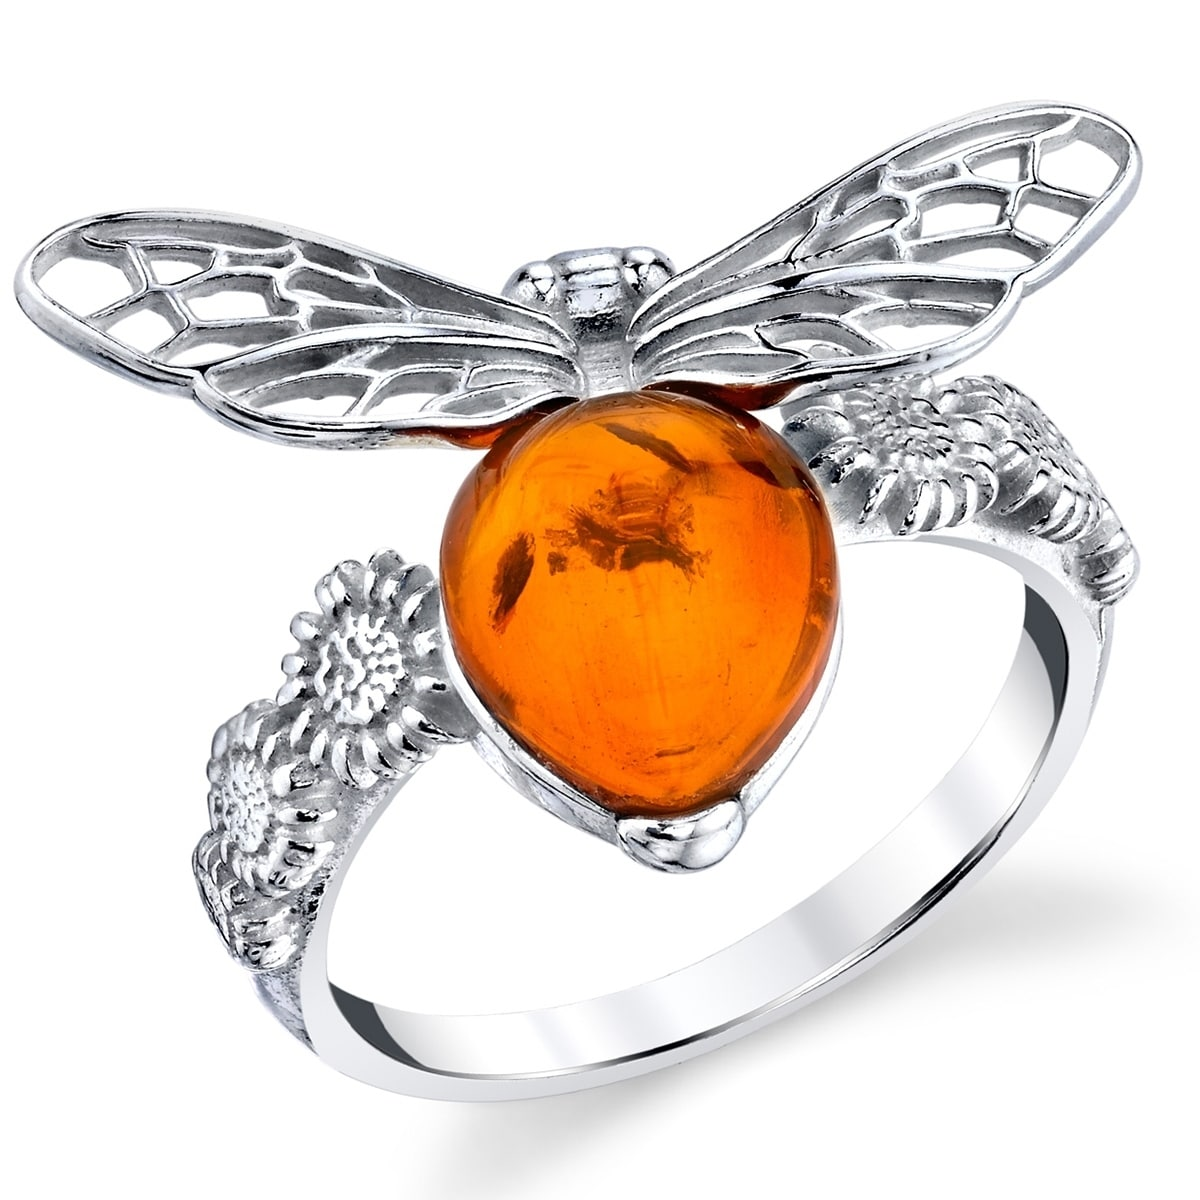 925 Sterling Silver Ring 14 x 9 mm Genuine Cognac Baltic Amber